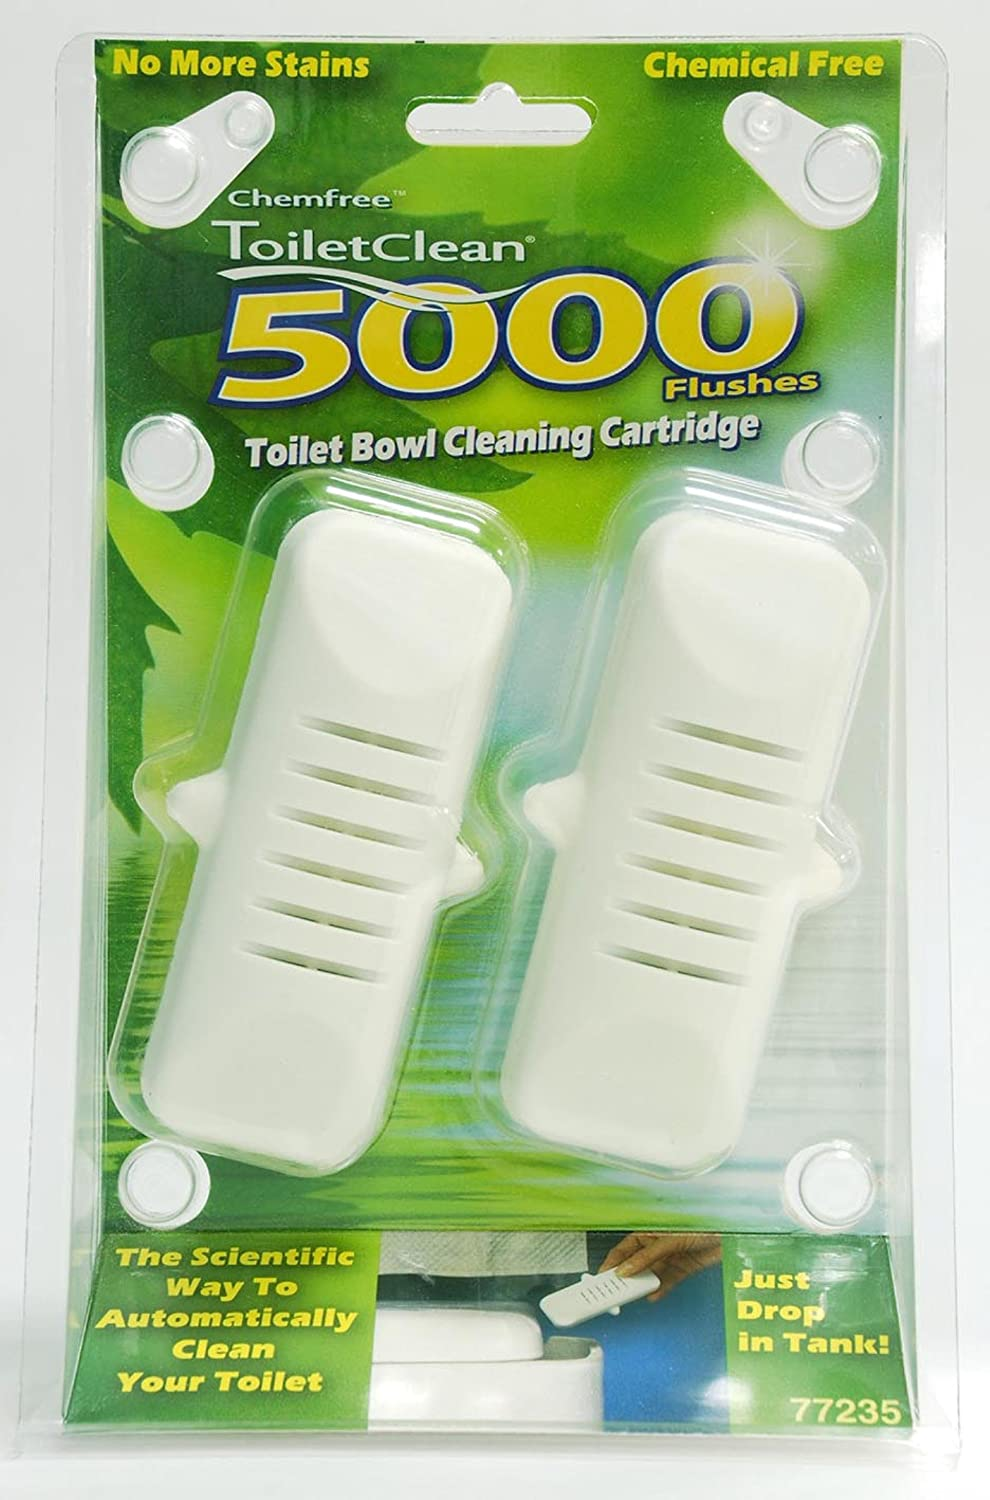 ChemFree Toilet Cleaner (2 units)